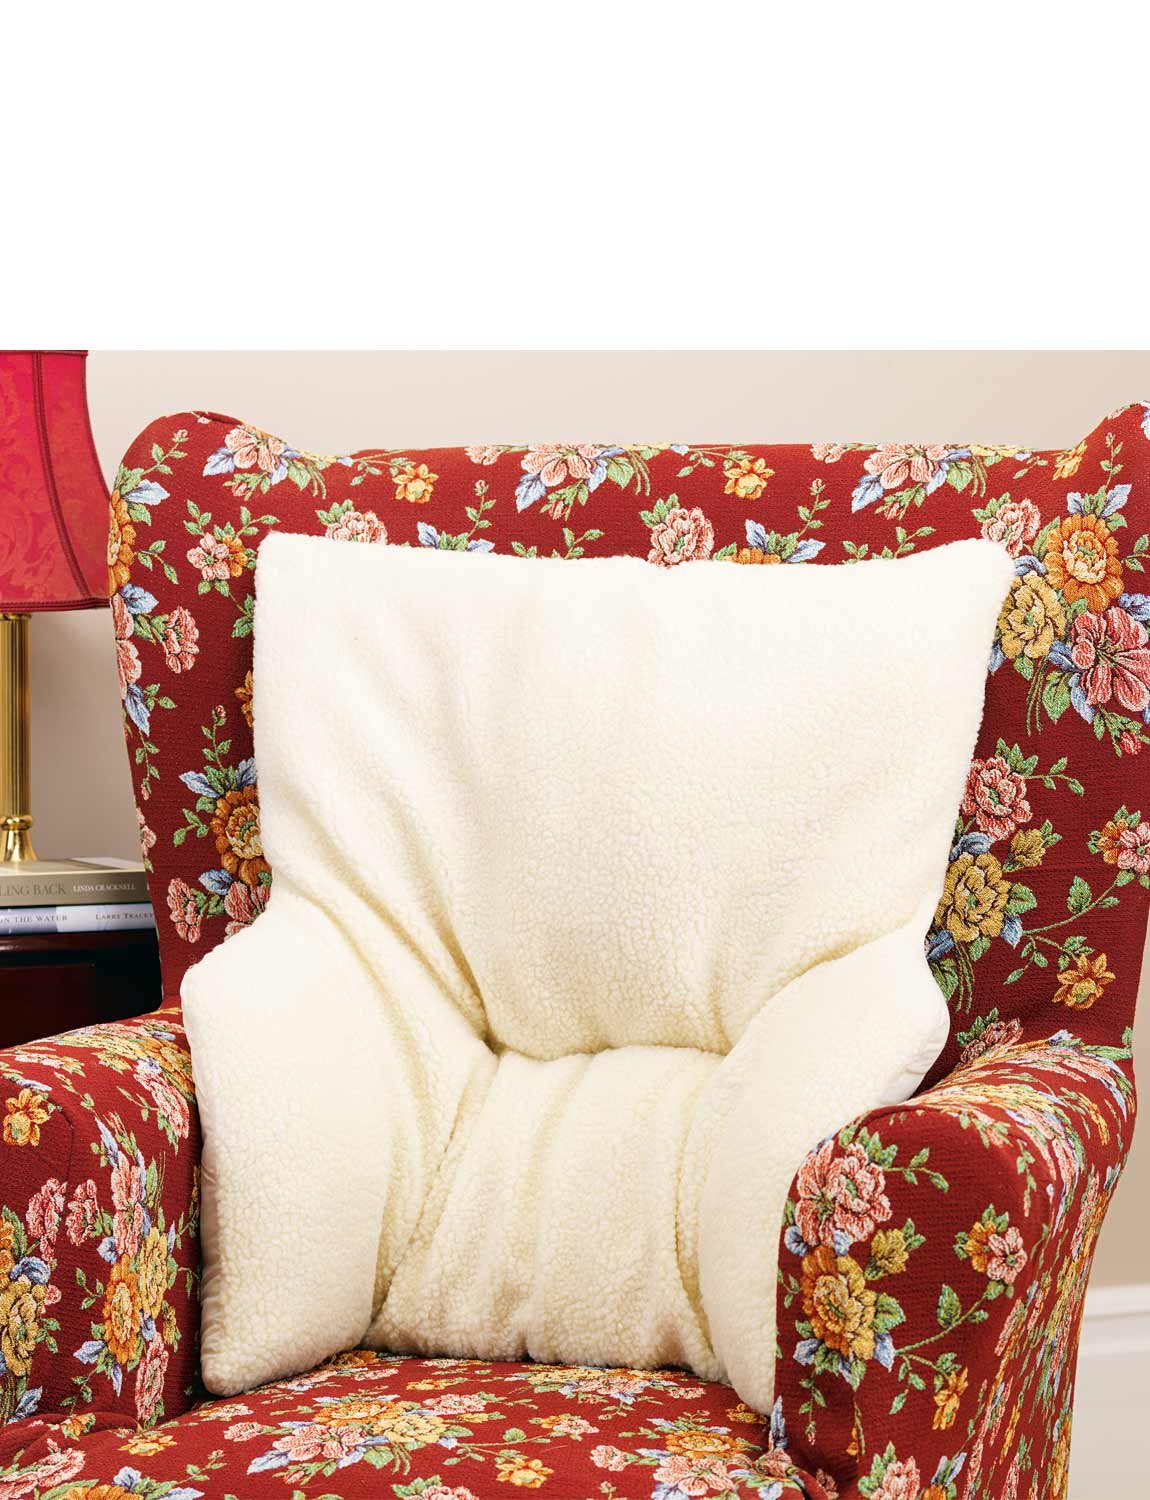 Armchair Fleece Back Rest Lumbar Support Aid Cushion Relieve Pain Beige Deluxe Easylife